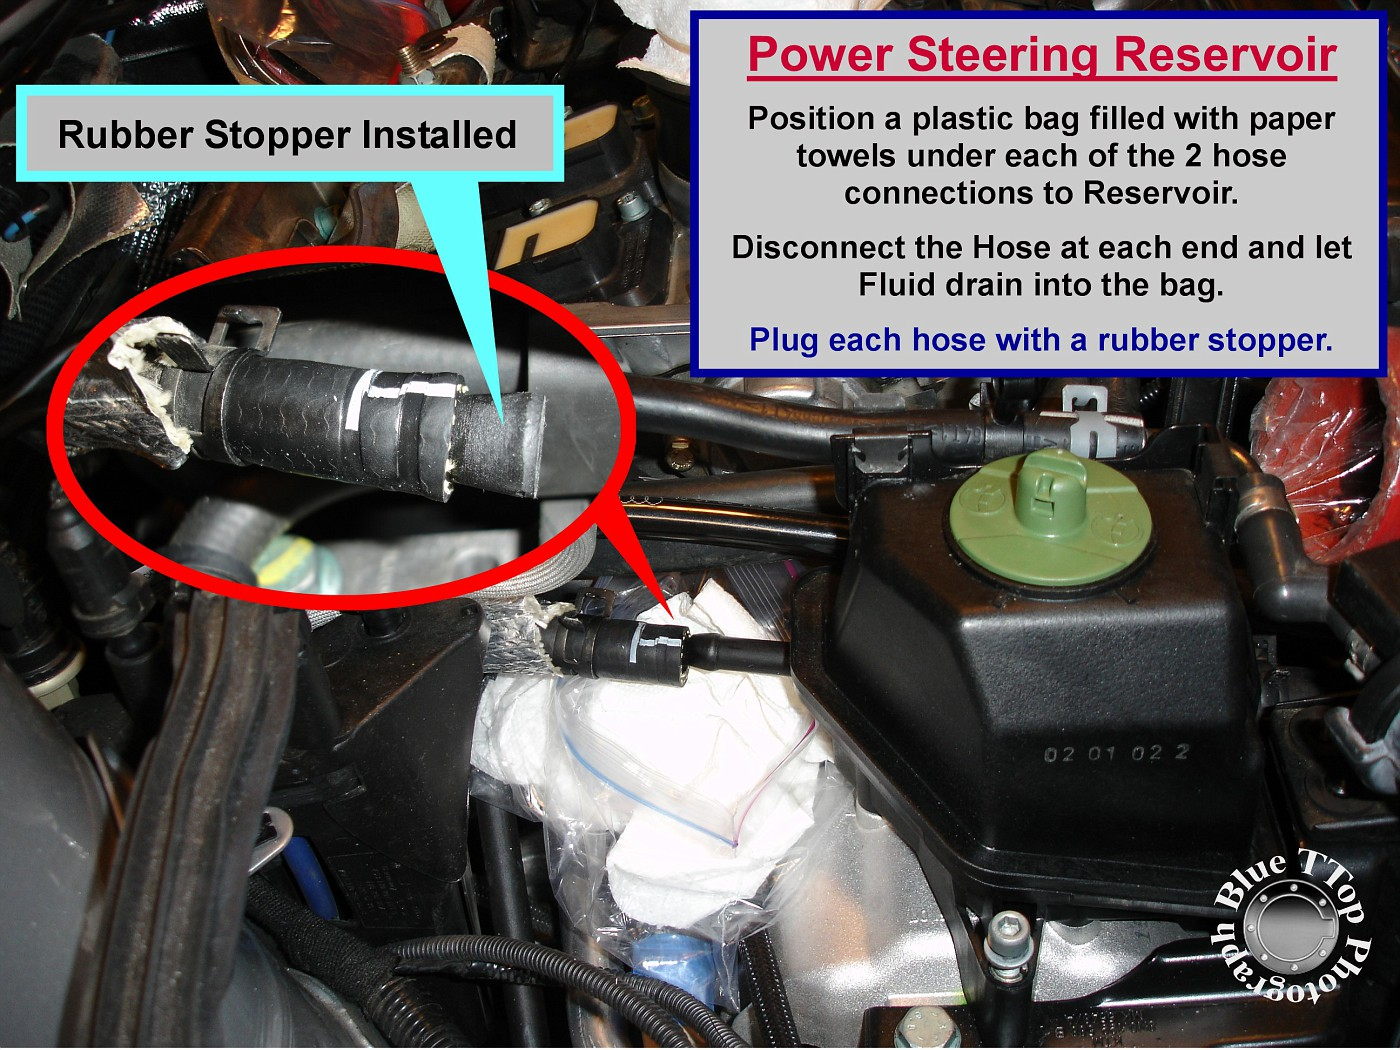 94 Accord Engine Diagram Valve Cover furthermore 94 Accord Engine Diagram Valve Cover together with Gmc Sierra Engine Parts Diagram Names likewise Expedition Fuel Tank Pressure Regulator additionally Dodge Challenger 5 7 Engine Cover. on bumper and ponents front